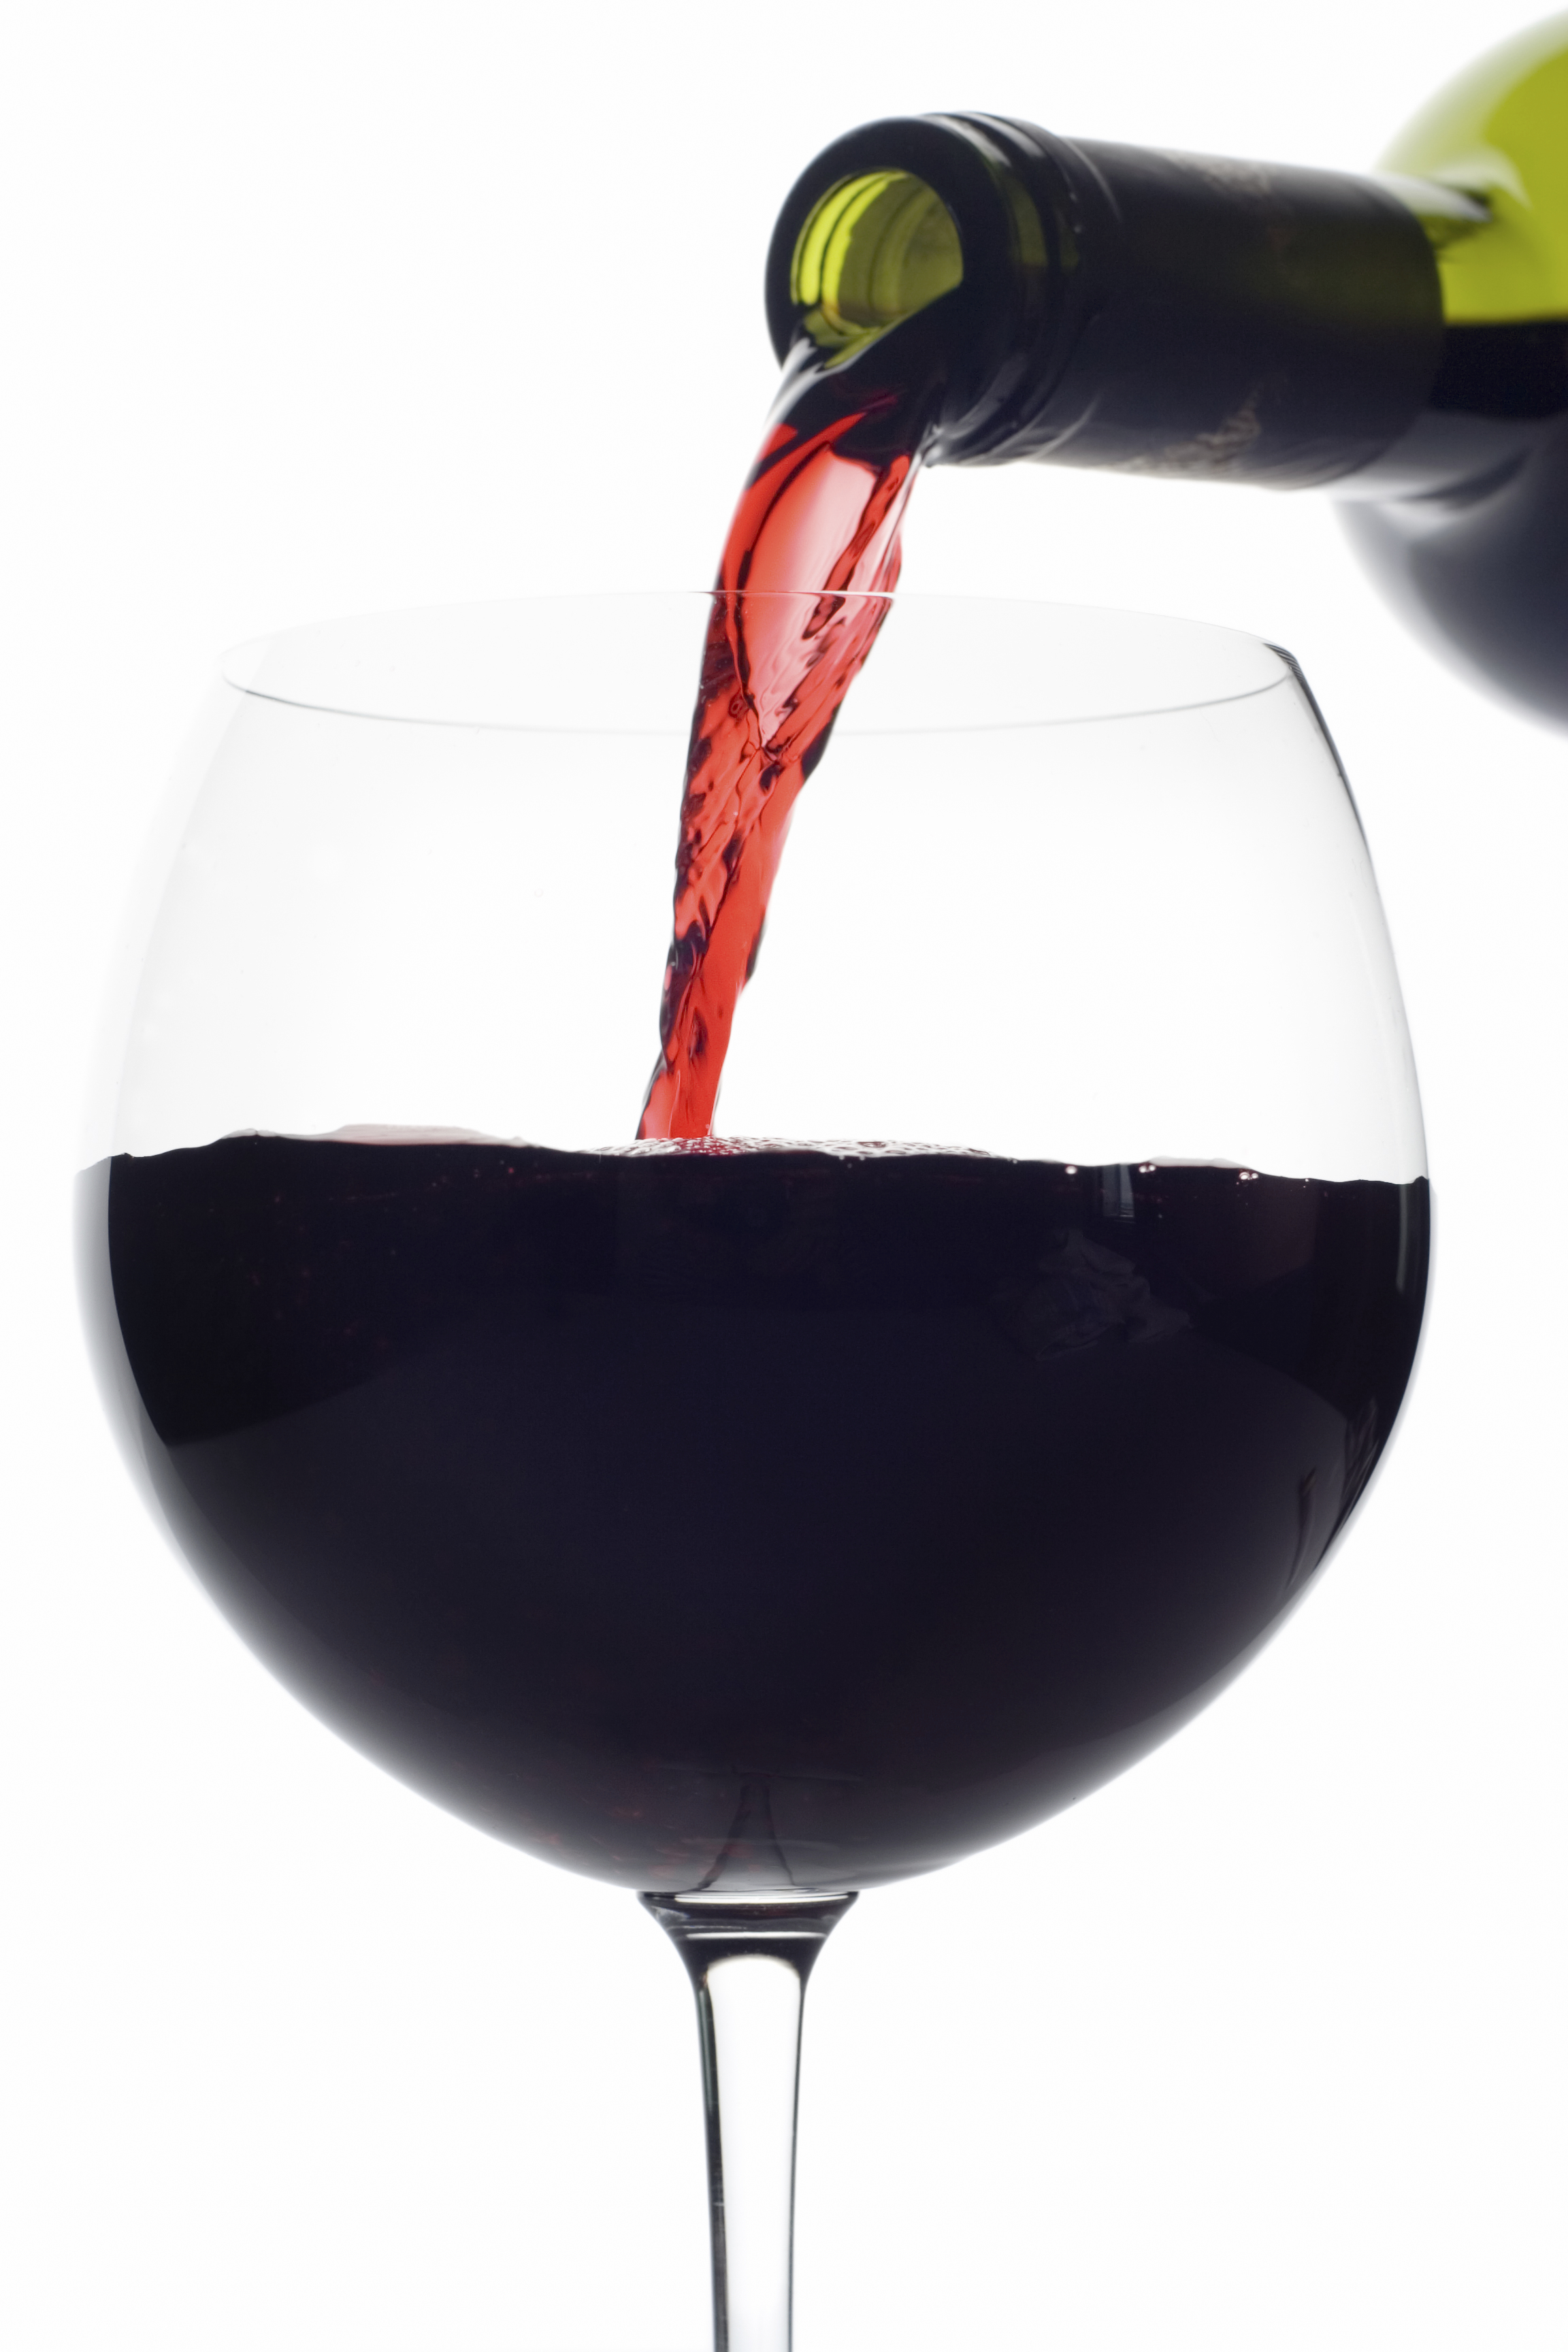 red wine pouring down from a wine bottle clipping path included bottle red wine